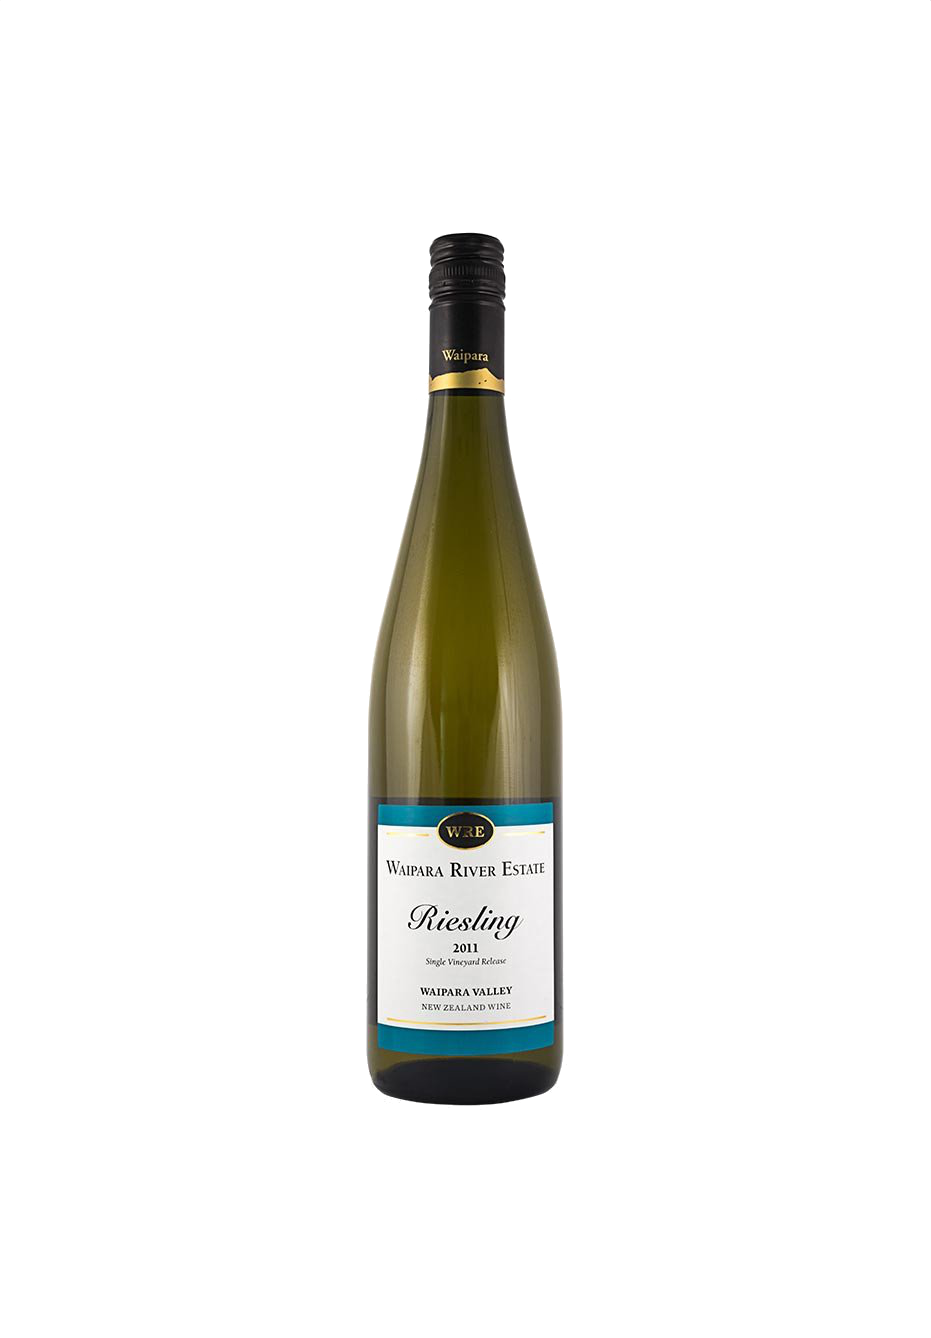 Waipara River Estate 'Single Vineyard' Riesling 2011